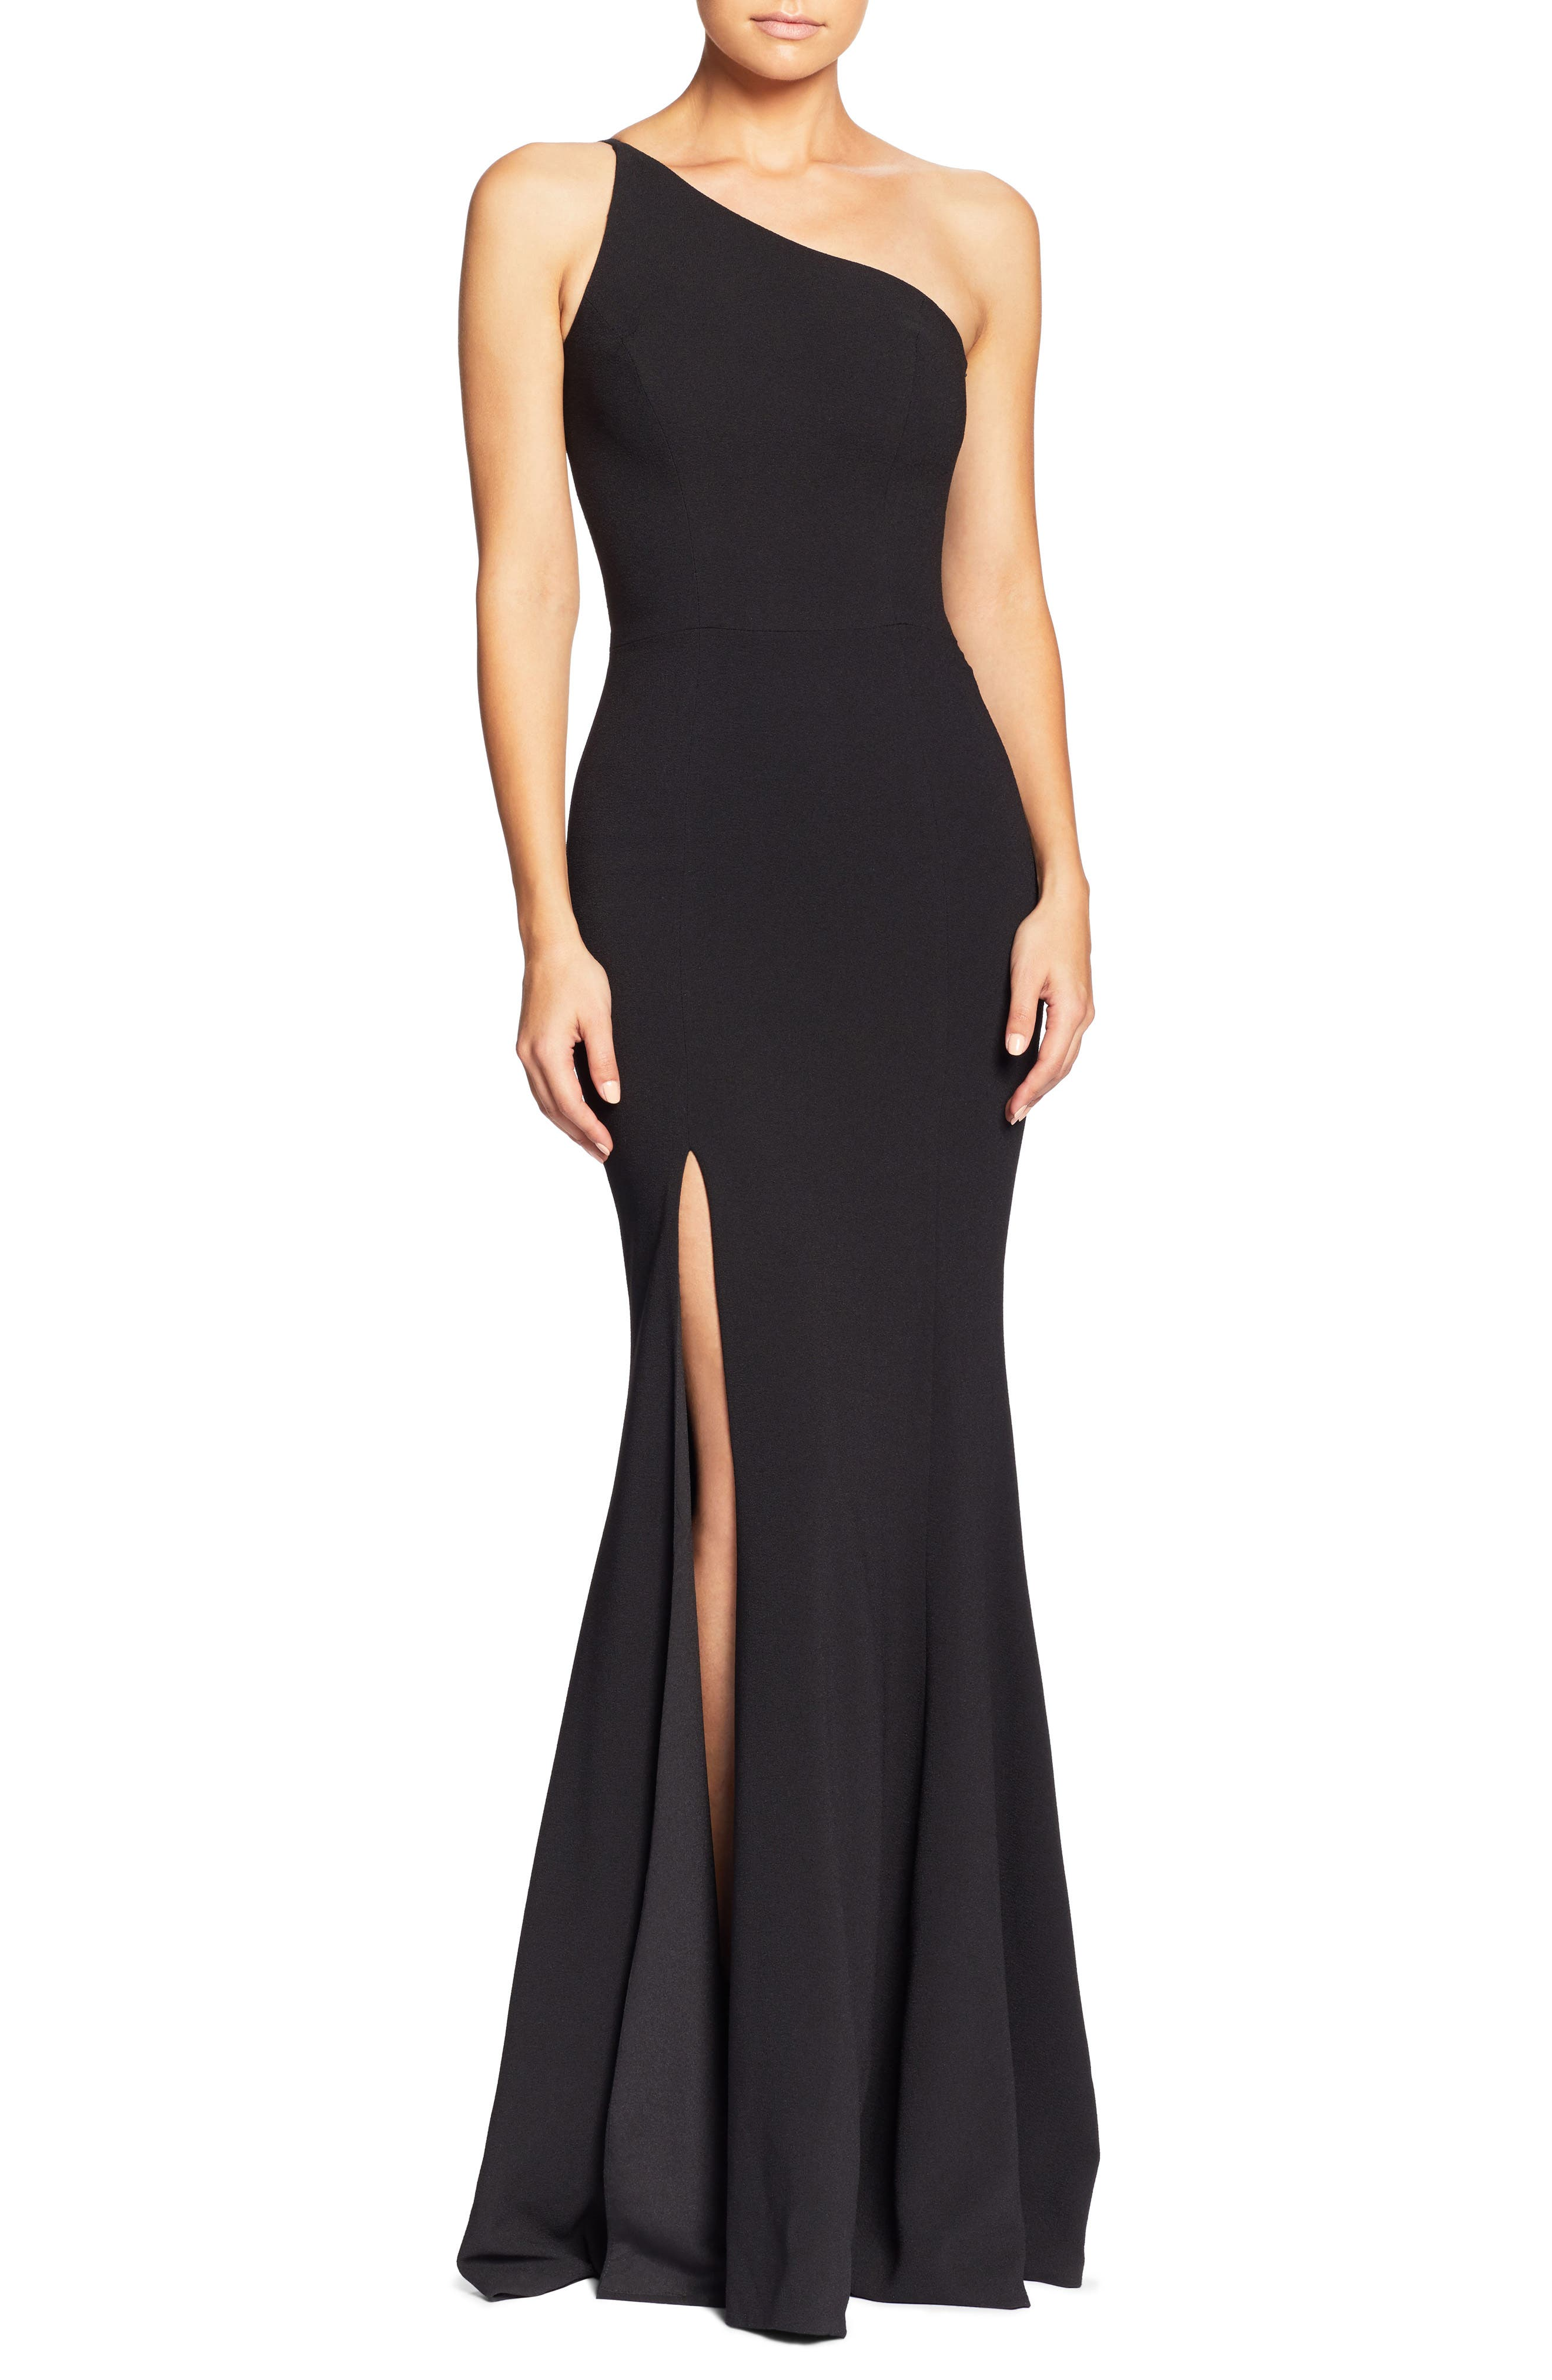 DRESS THE POPULATION Amy One-Shoulder Crepe Gown, Main, color, 001